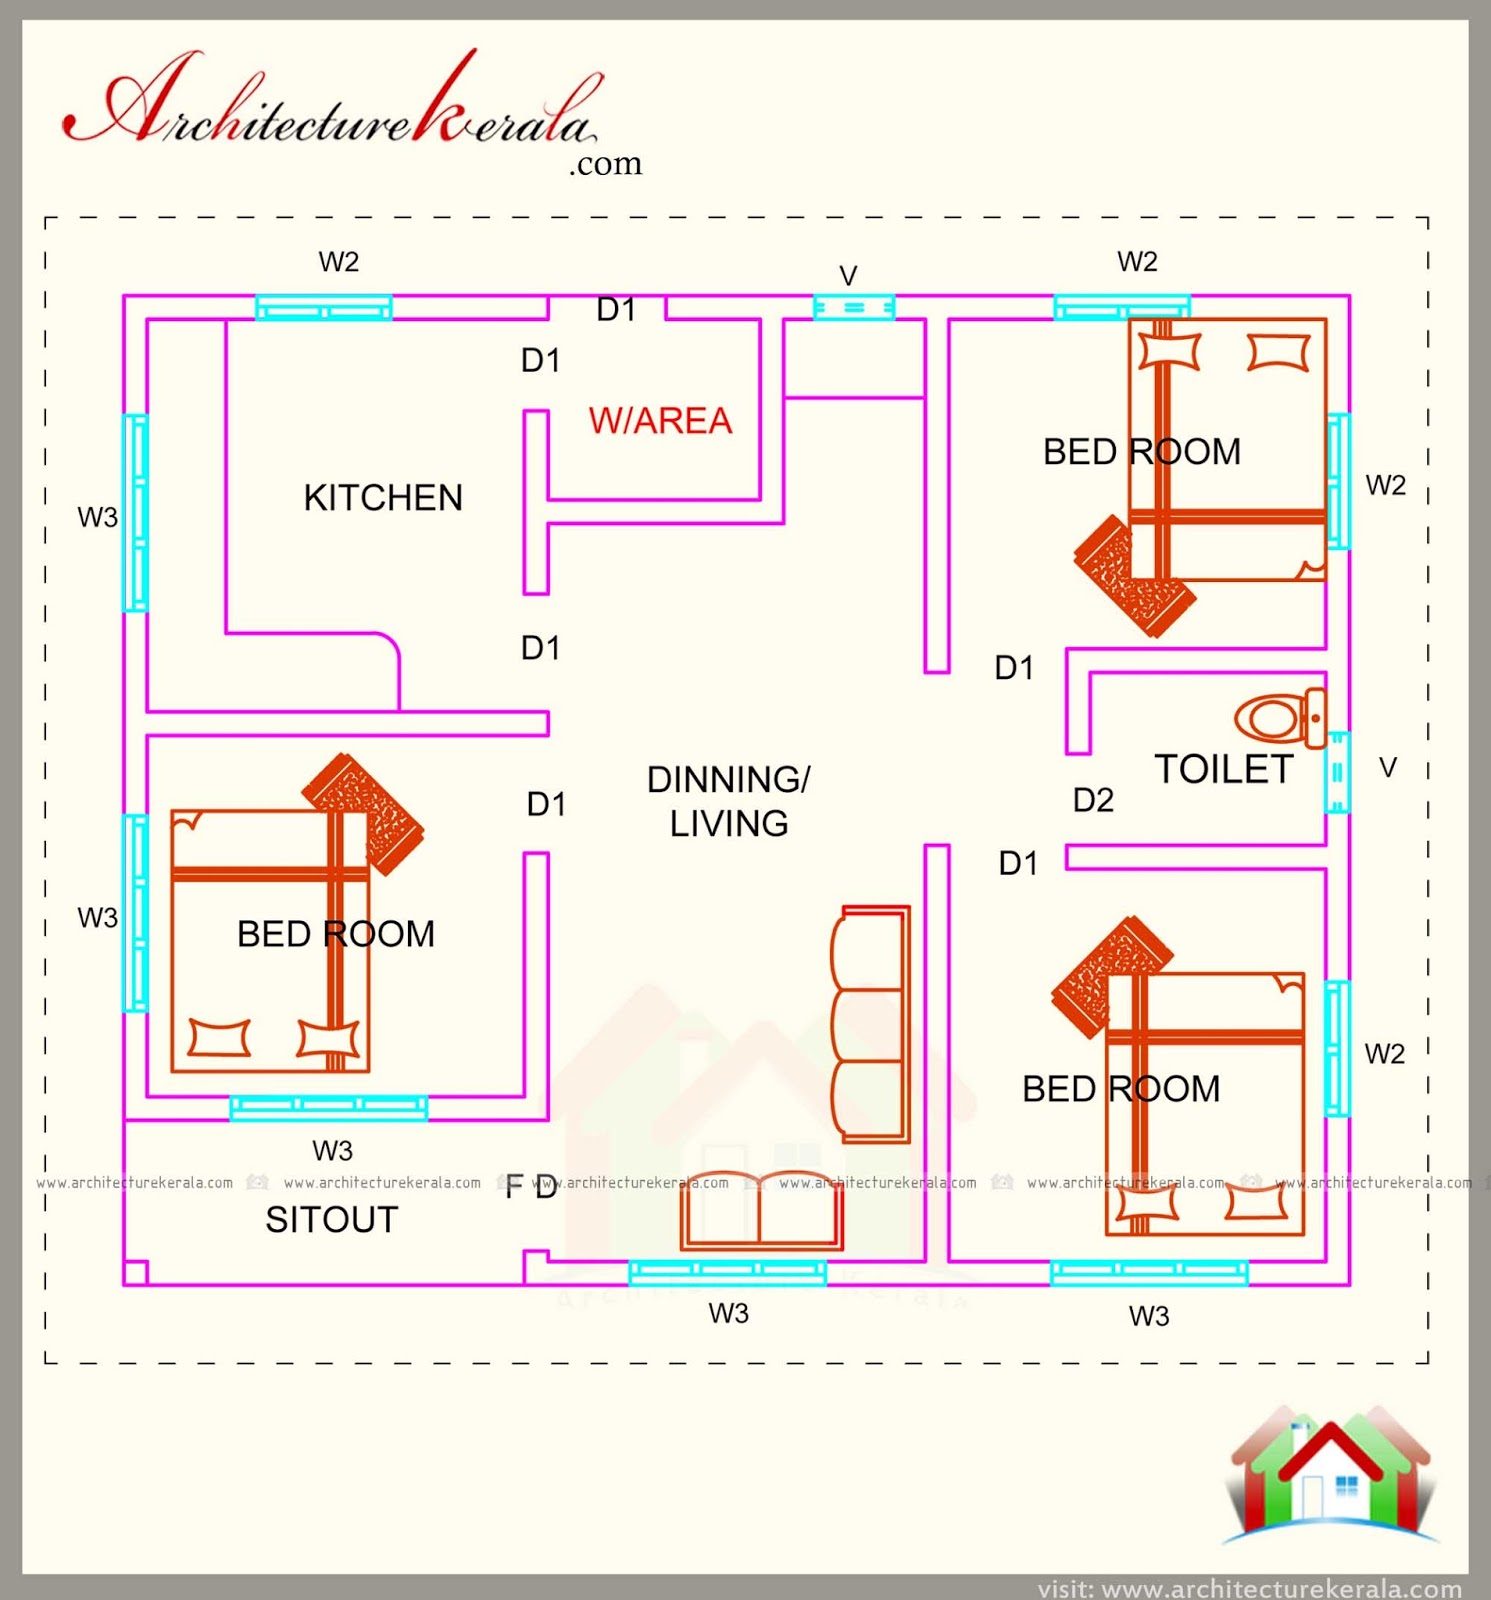 760 square feet 3 bedroom house plan architecture kerala for 2 bedroom house plans in kerala